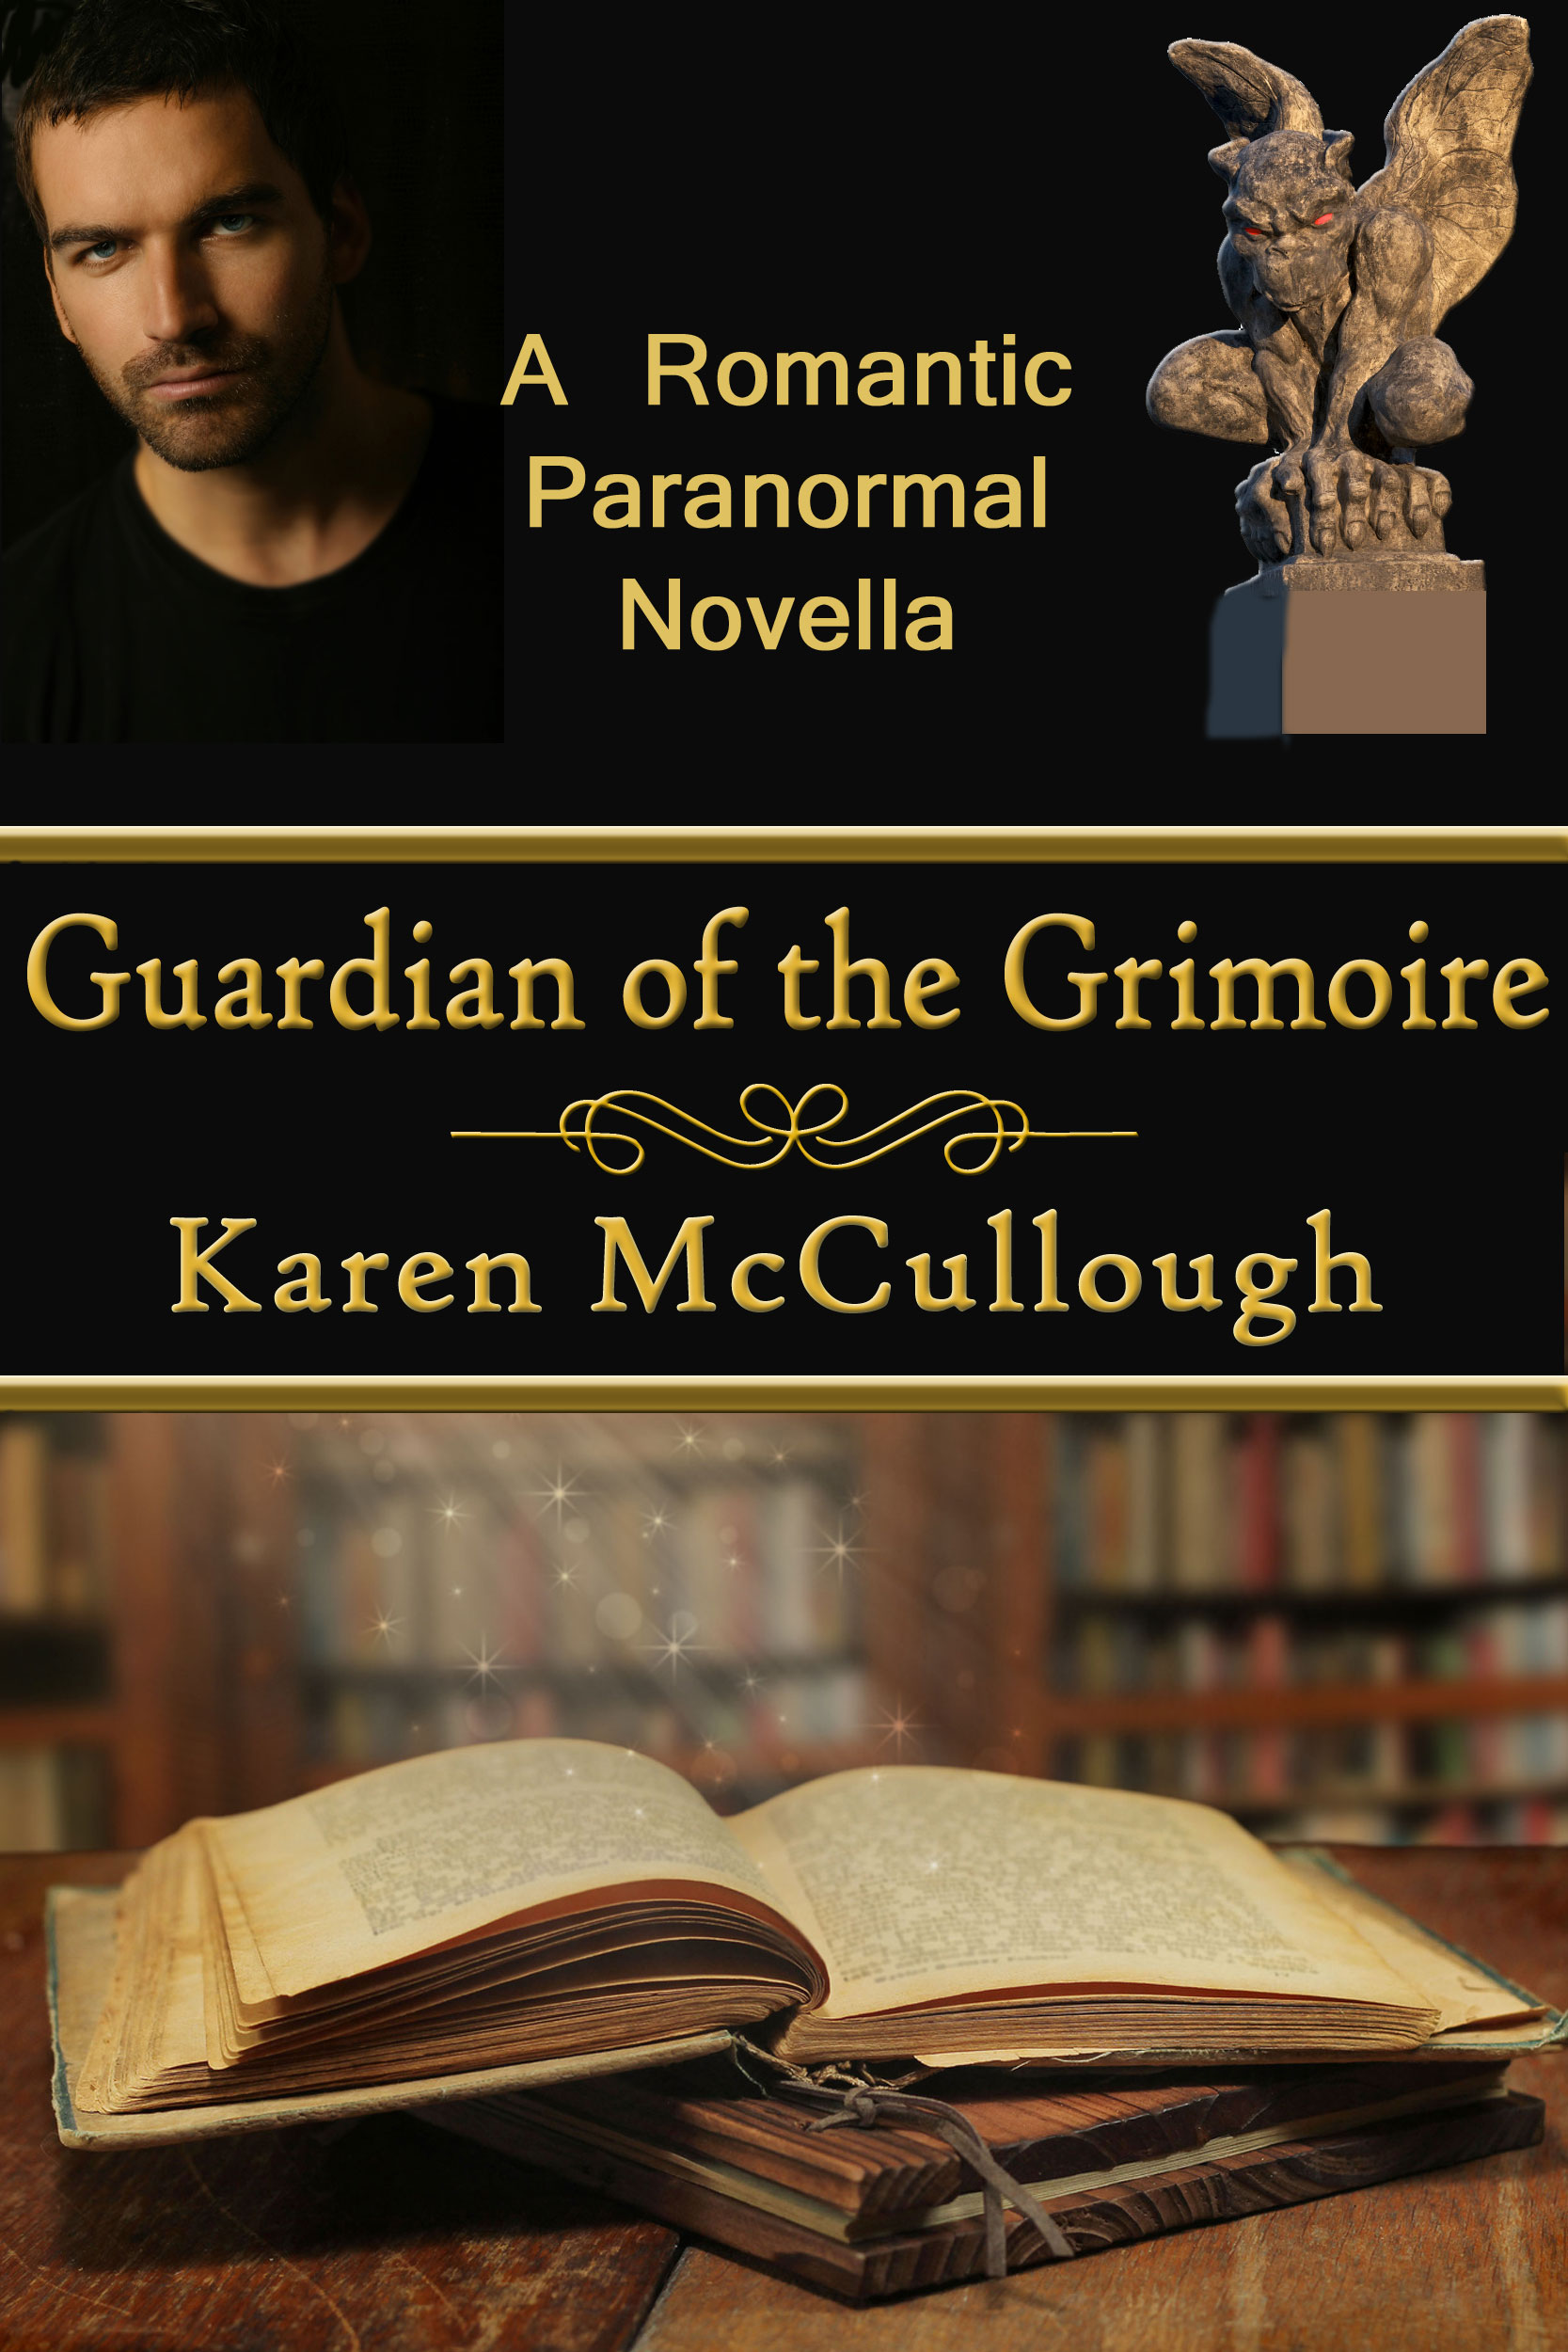 Guardian of the Grimoire